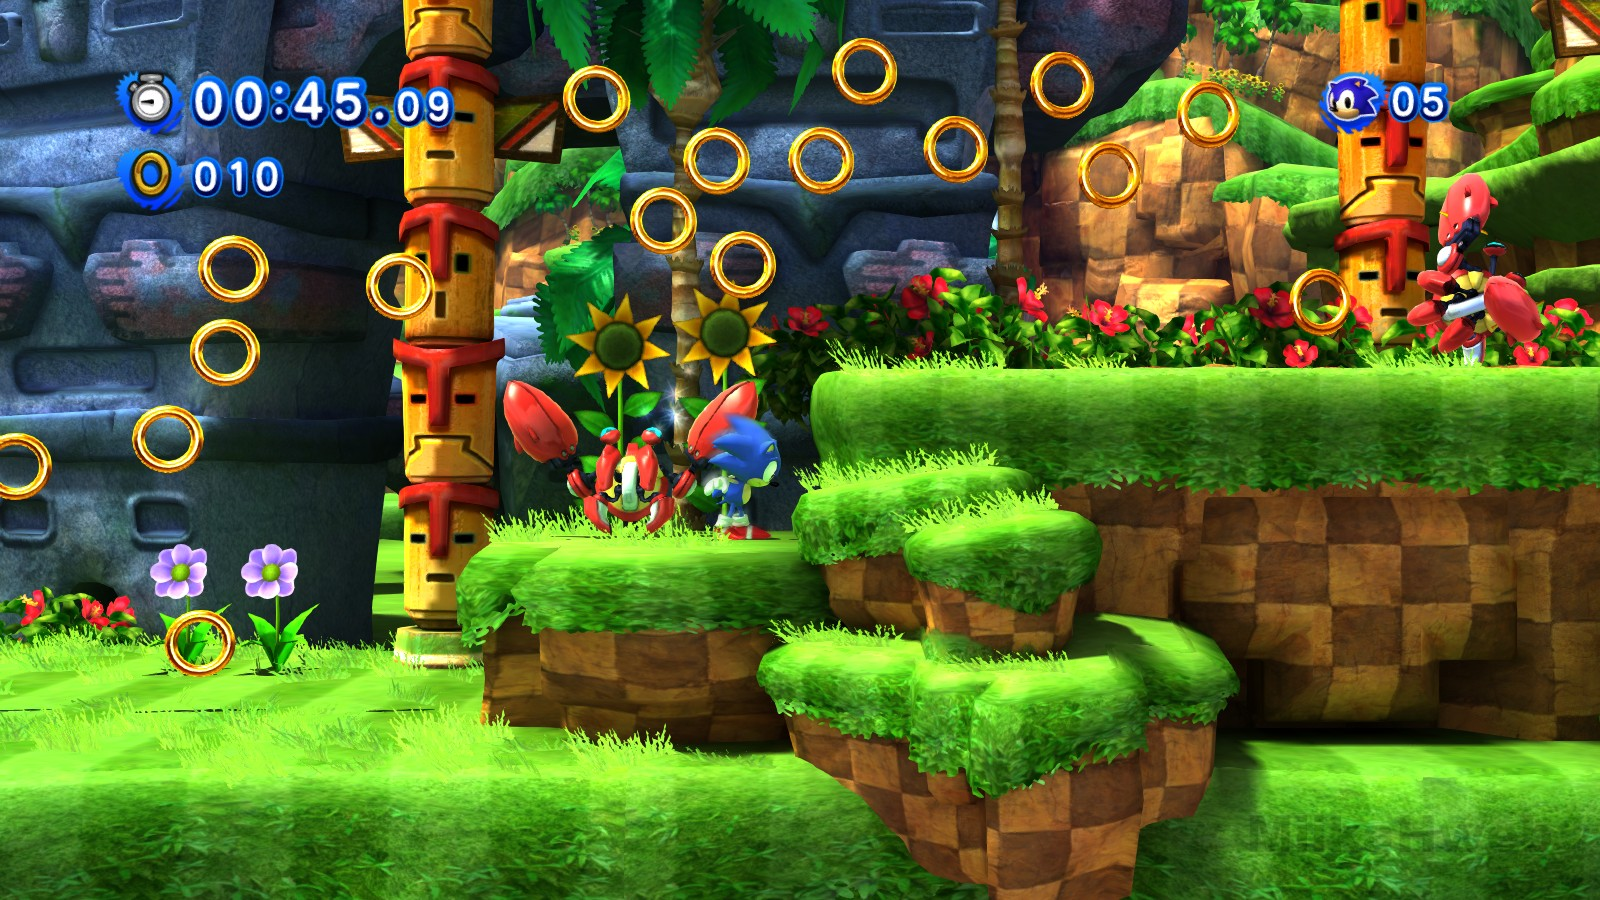 MiikaHweb - Game : Sonic Generations